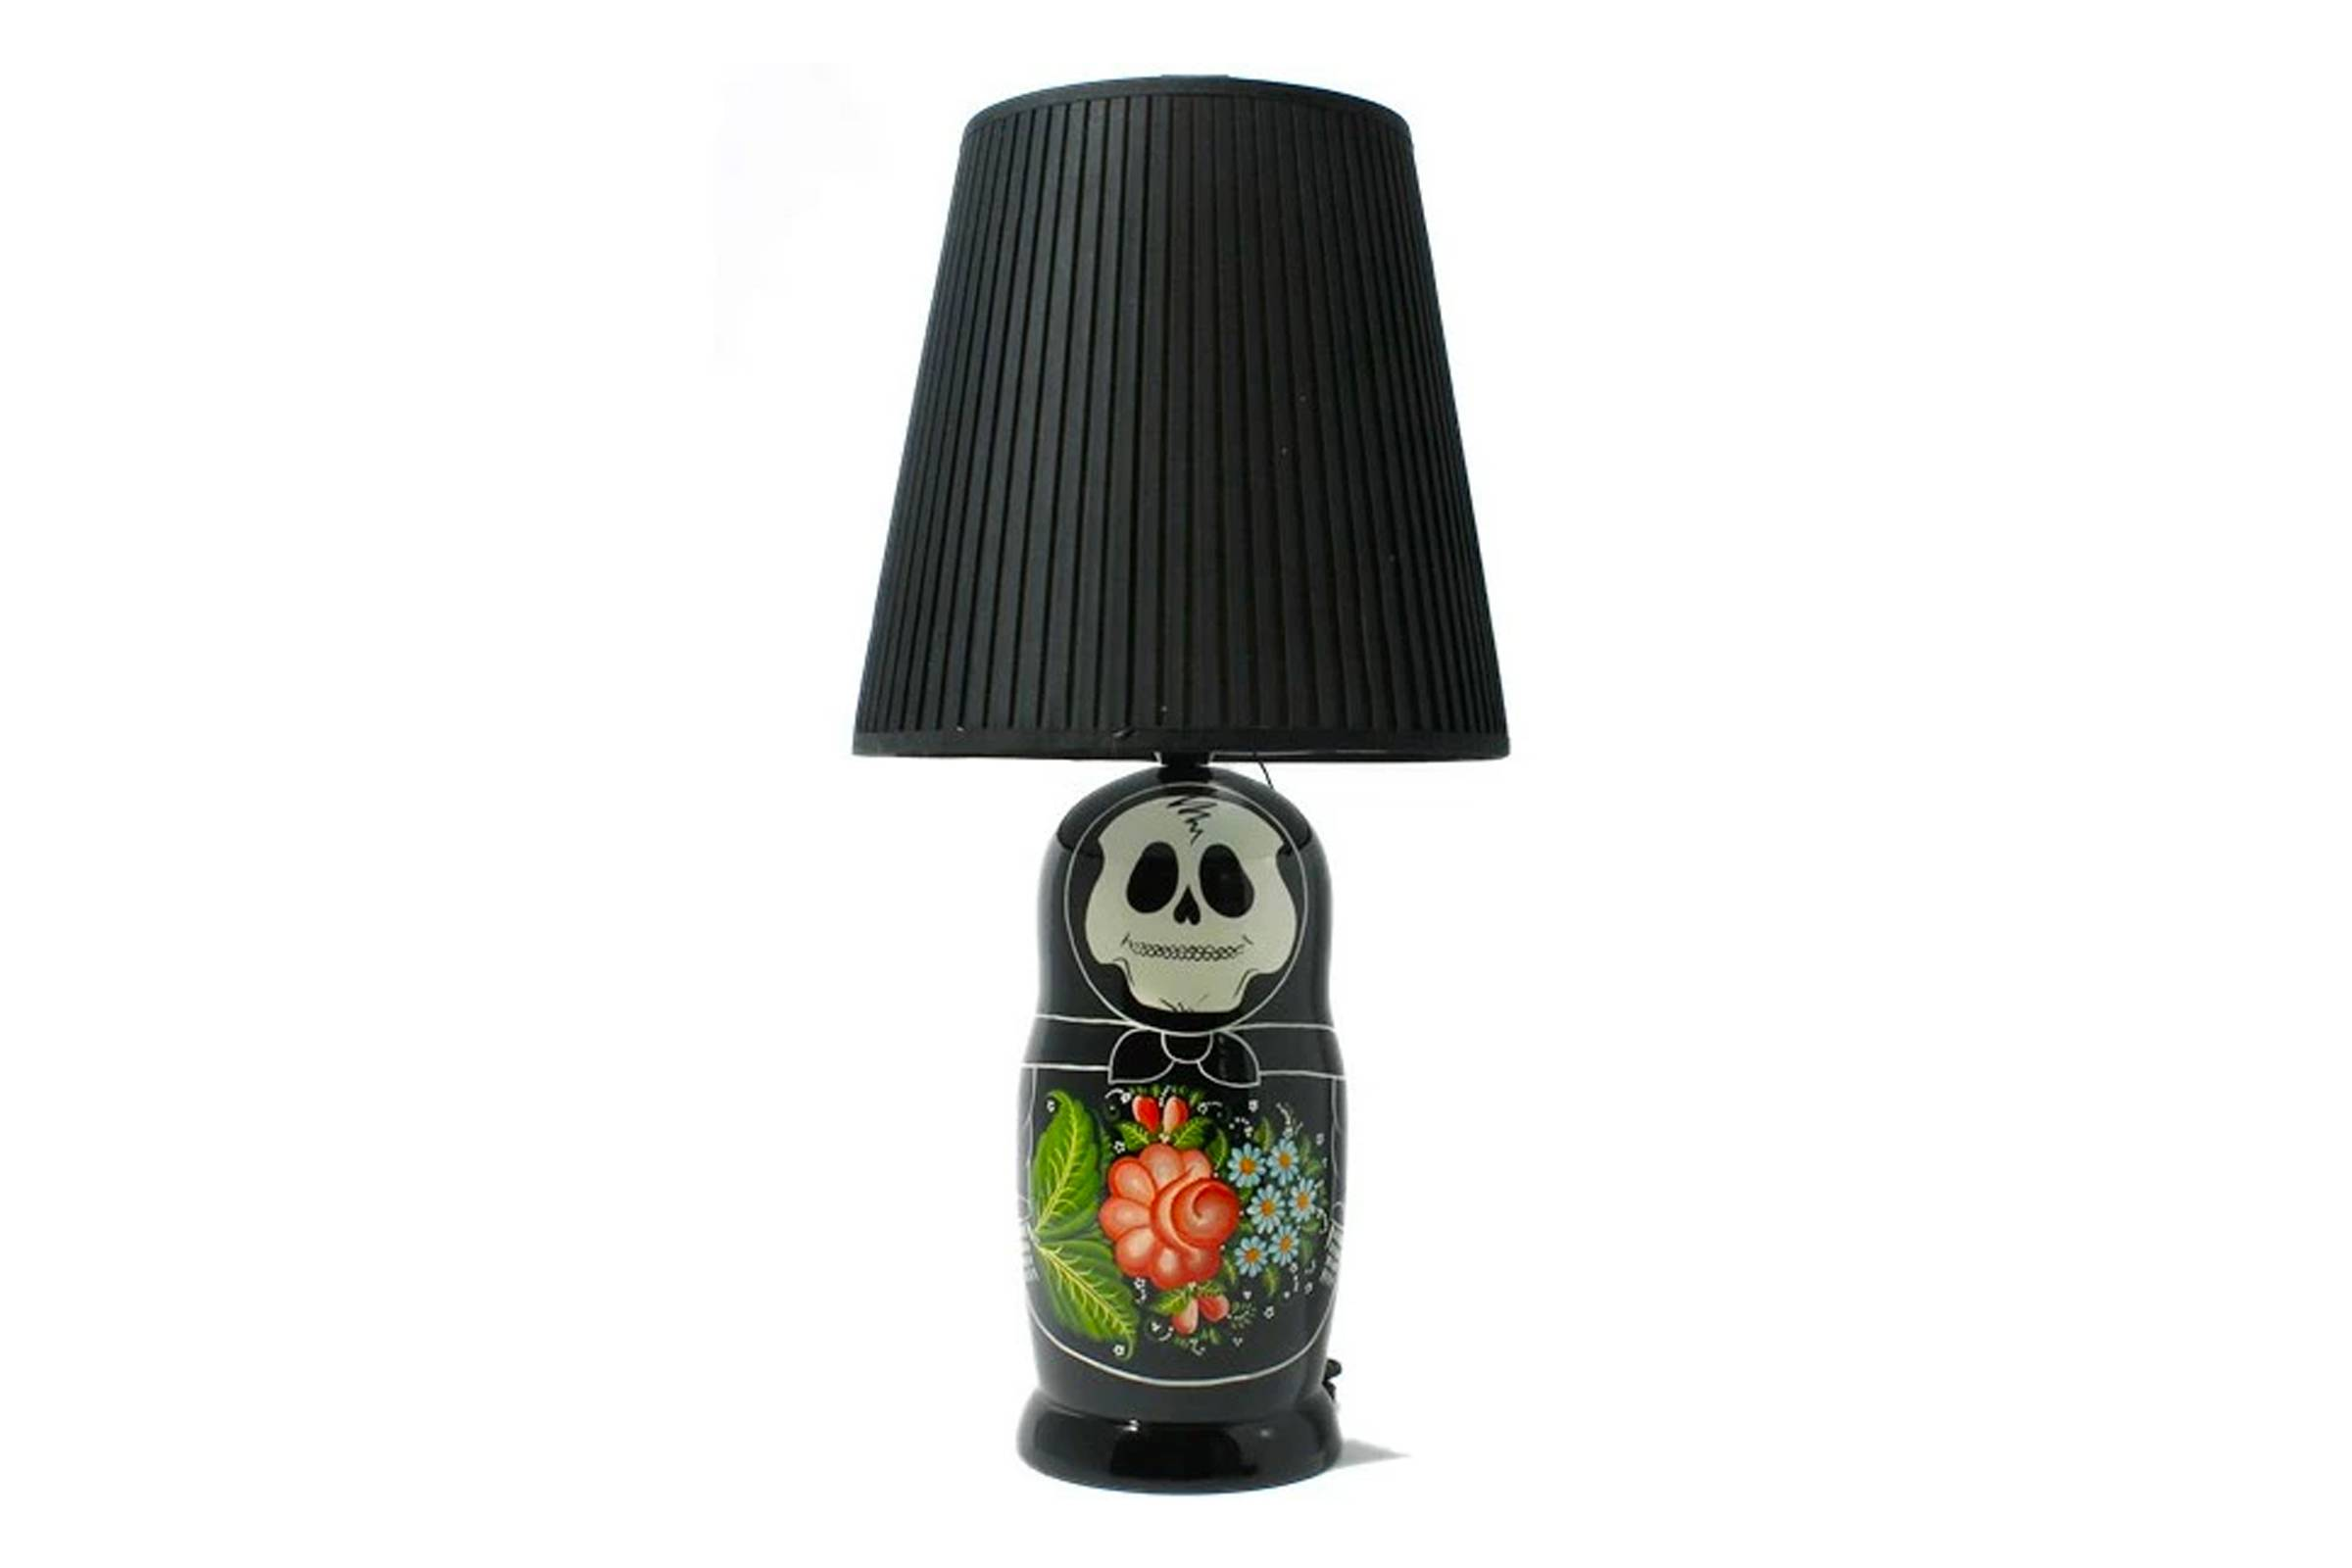 Suicoke's Matryushka doll lamp